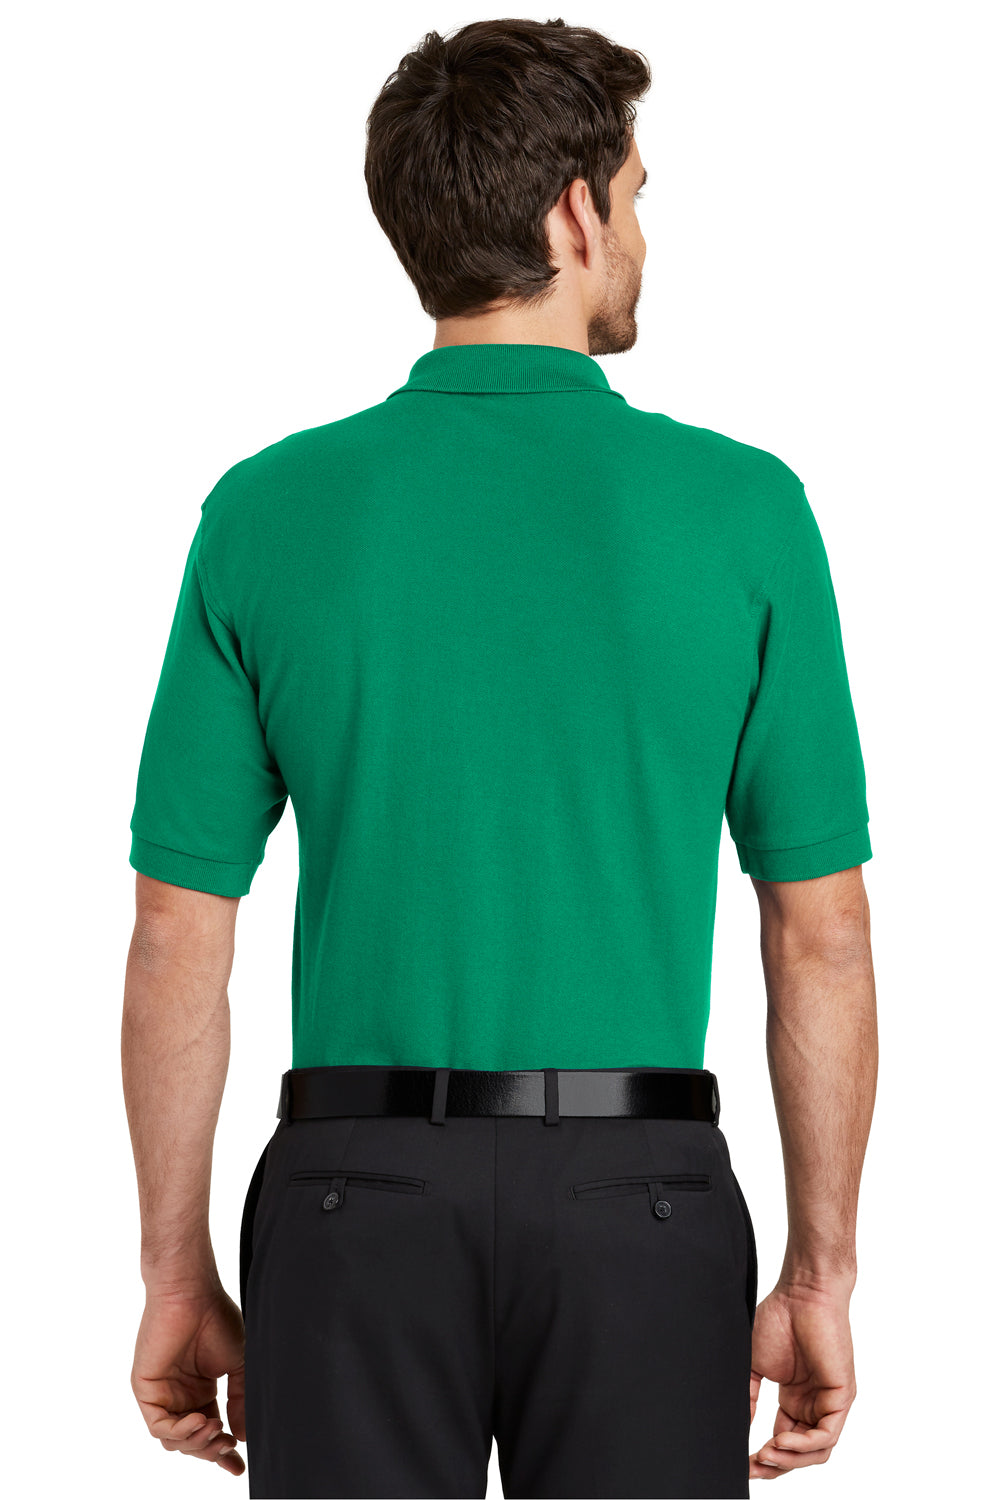 Port Authority K500 Mens Silk Touch Wrinkle Resistant Short Sleeve Polo Shirt Kelly Green Back